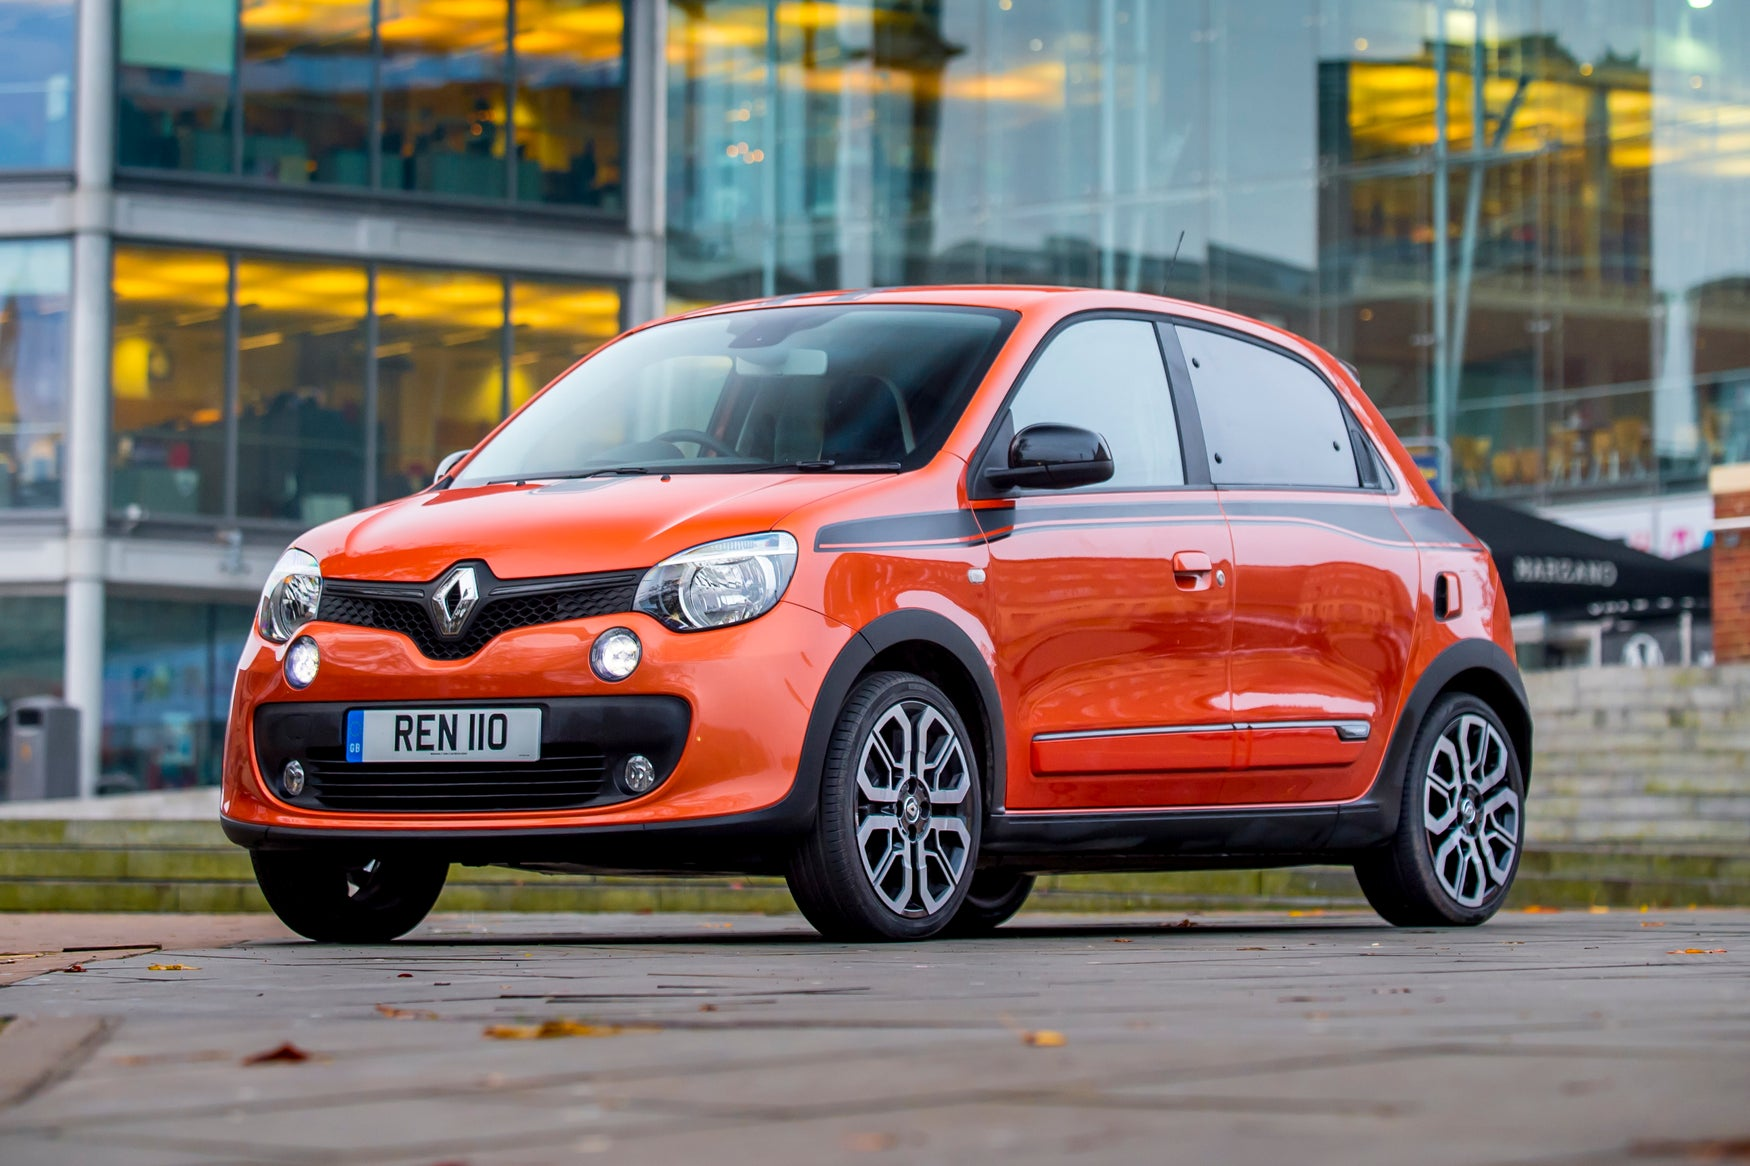 Renault Twingo Front Side View